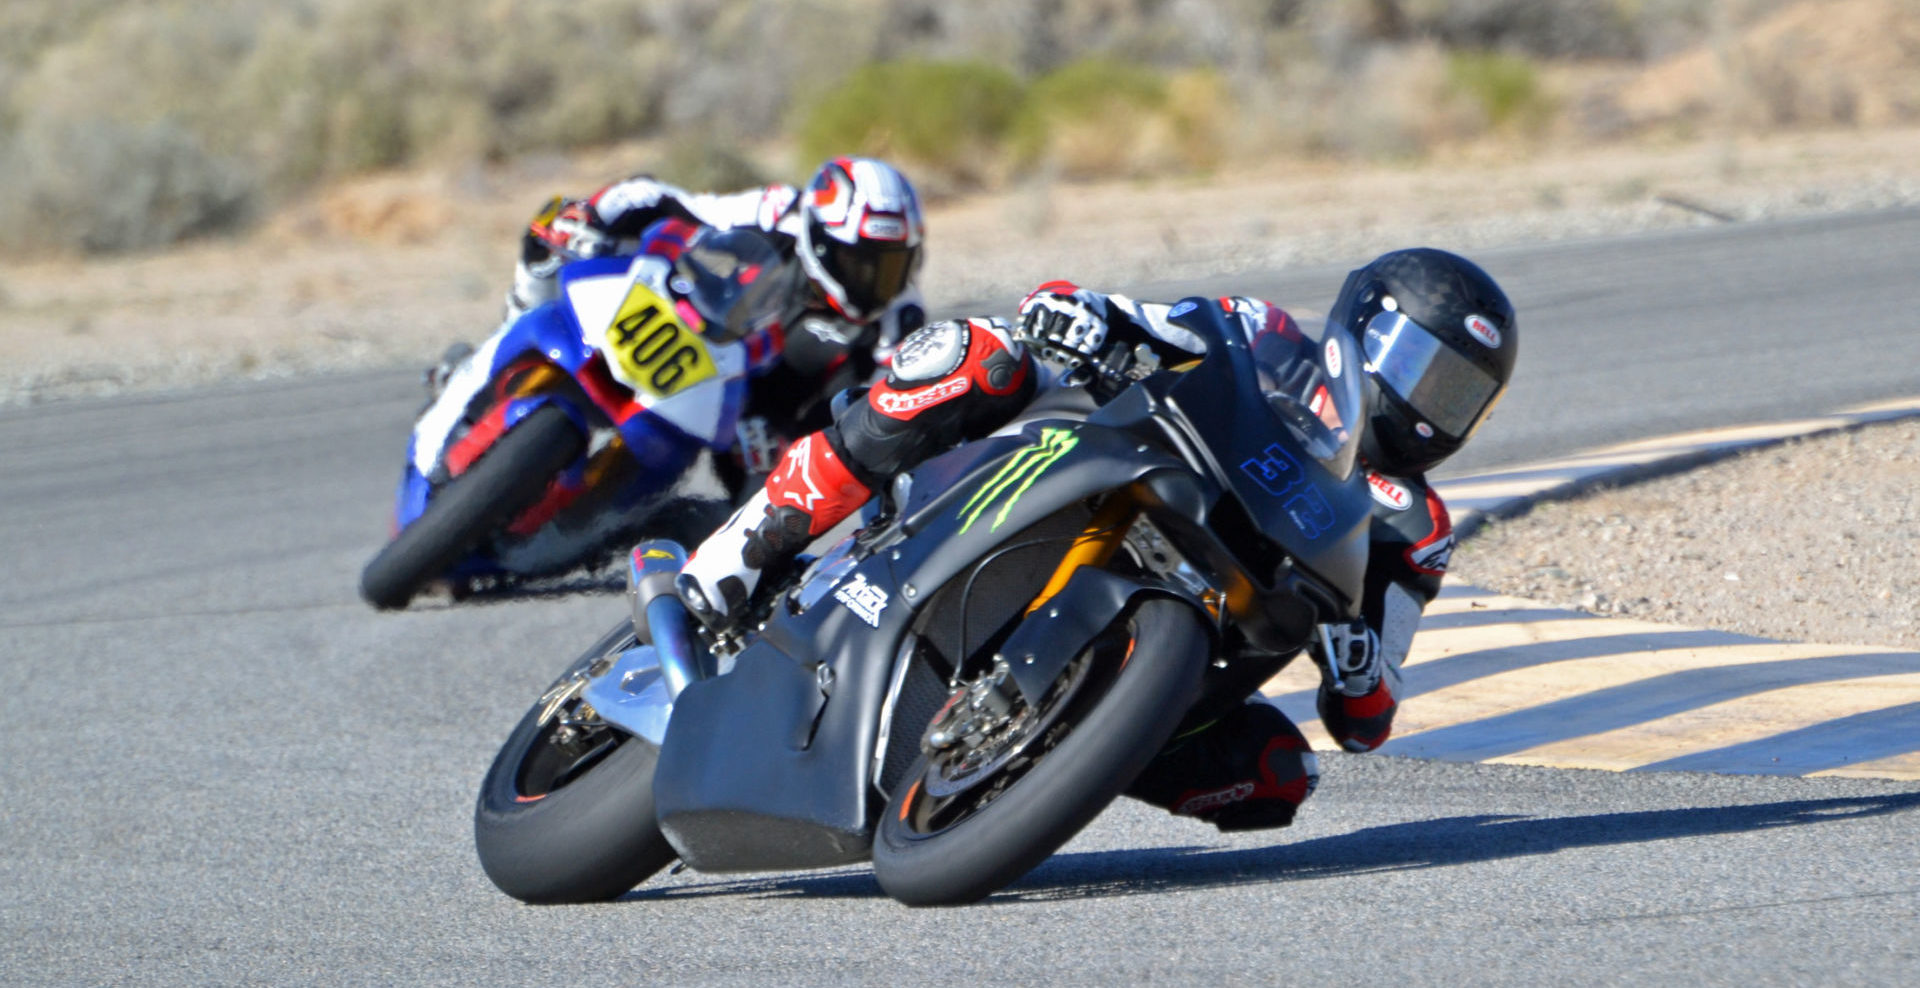 Jake Gagne (32) testing a Monster Energy Attack Performance Yamaha Racing YZF-R1 Superbike during a motorcycle members track day Monday at Chuckwalla Valley Raceway. Photo by David Swarts.